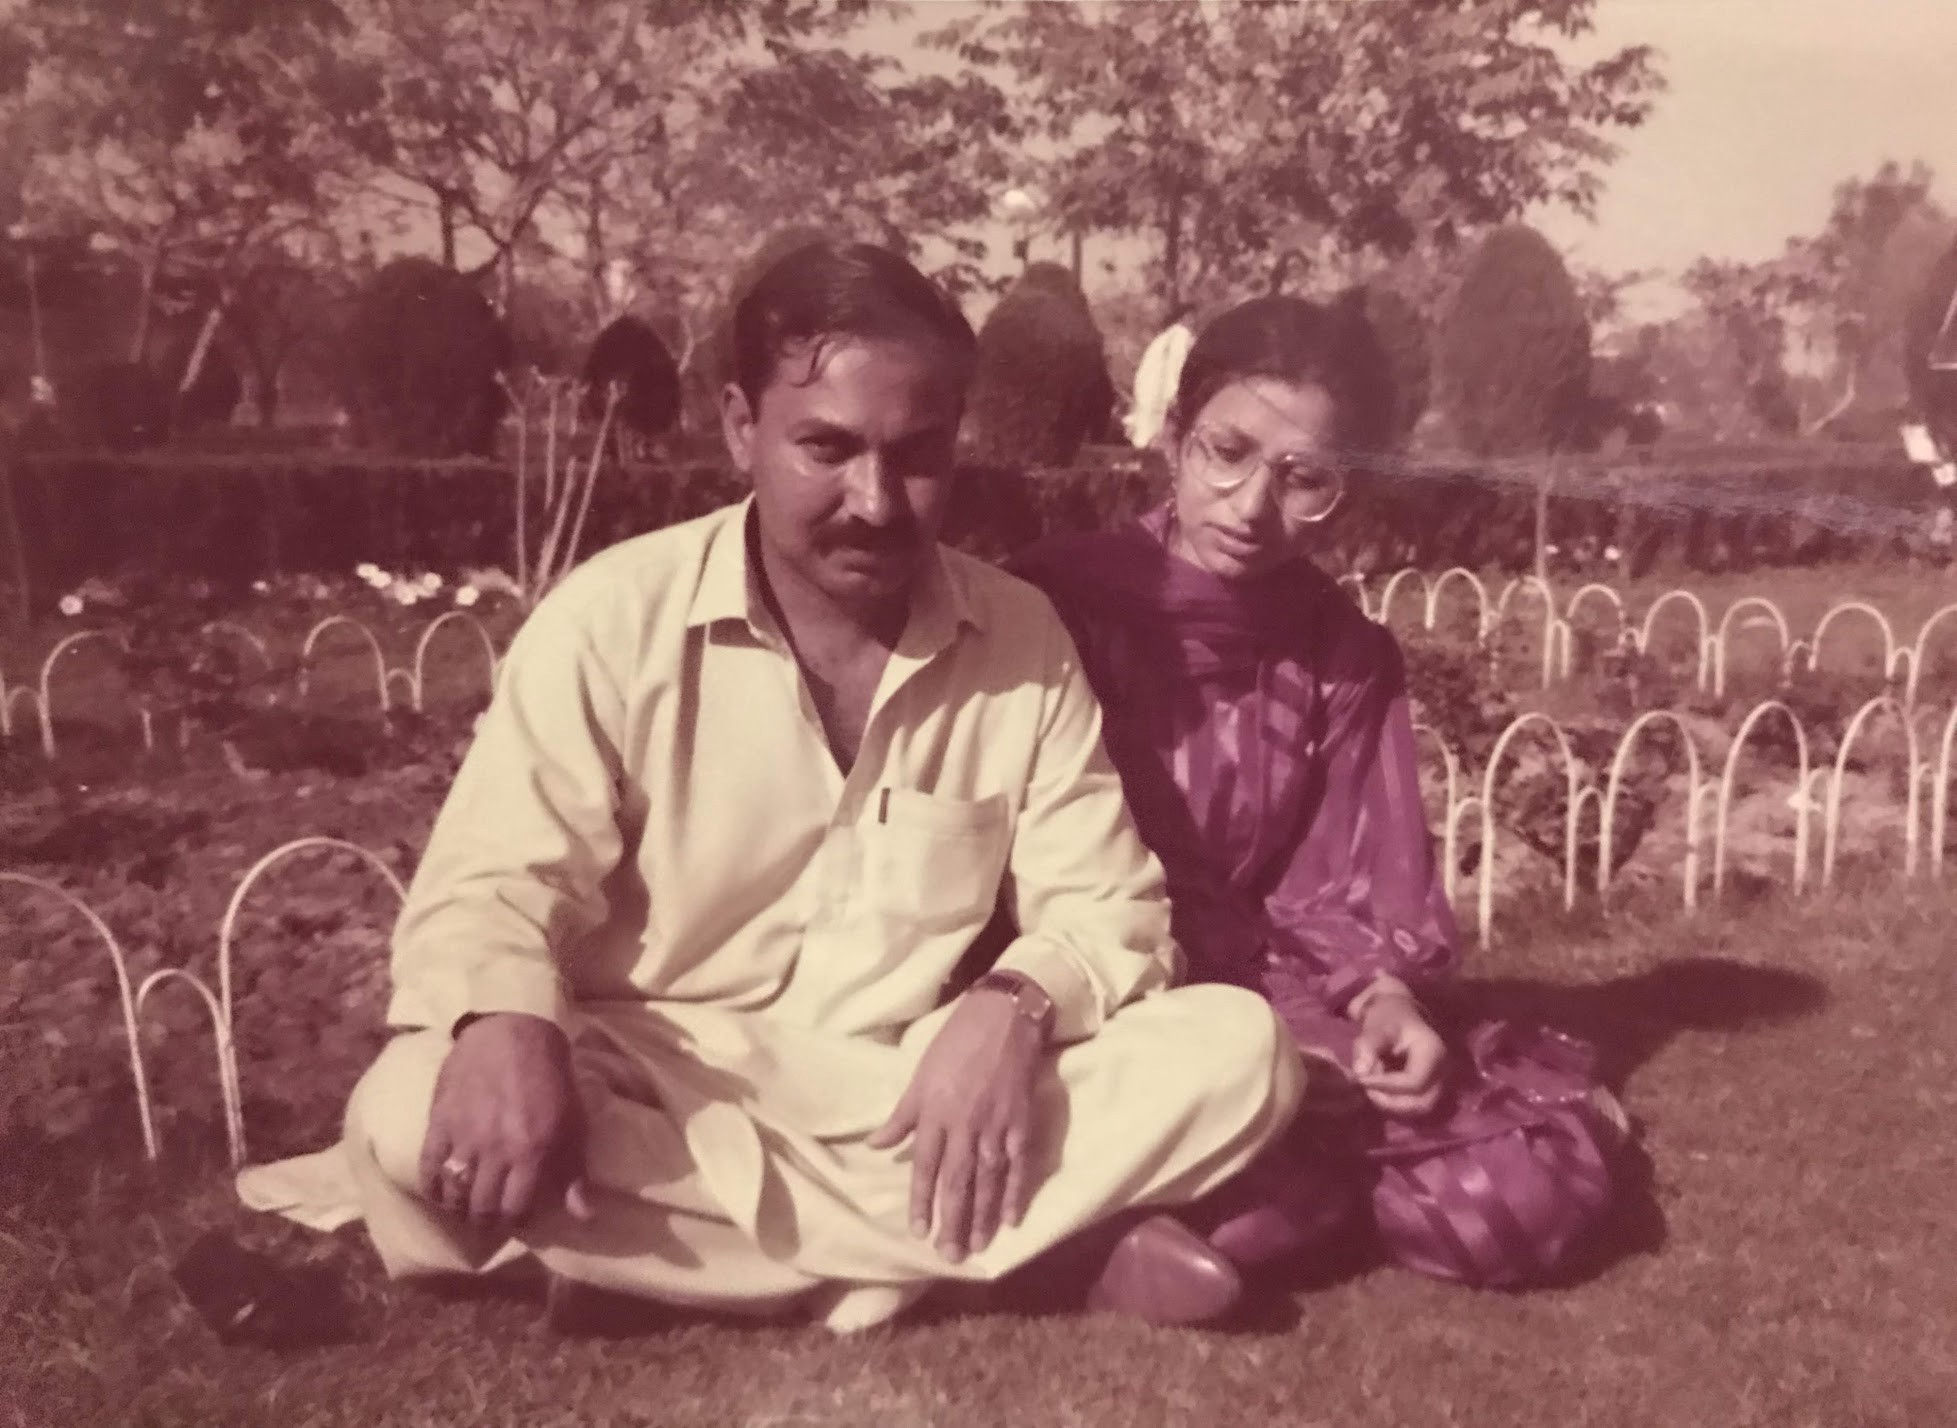 Ami and Abu on their first date after marriage (Jallo Park, Lahore) (1987)